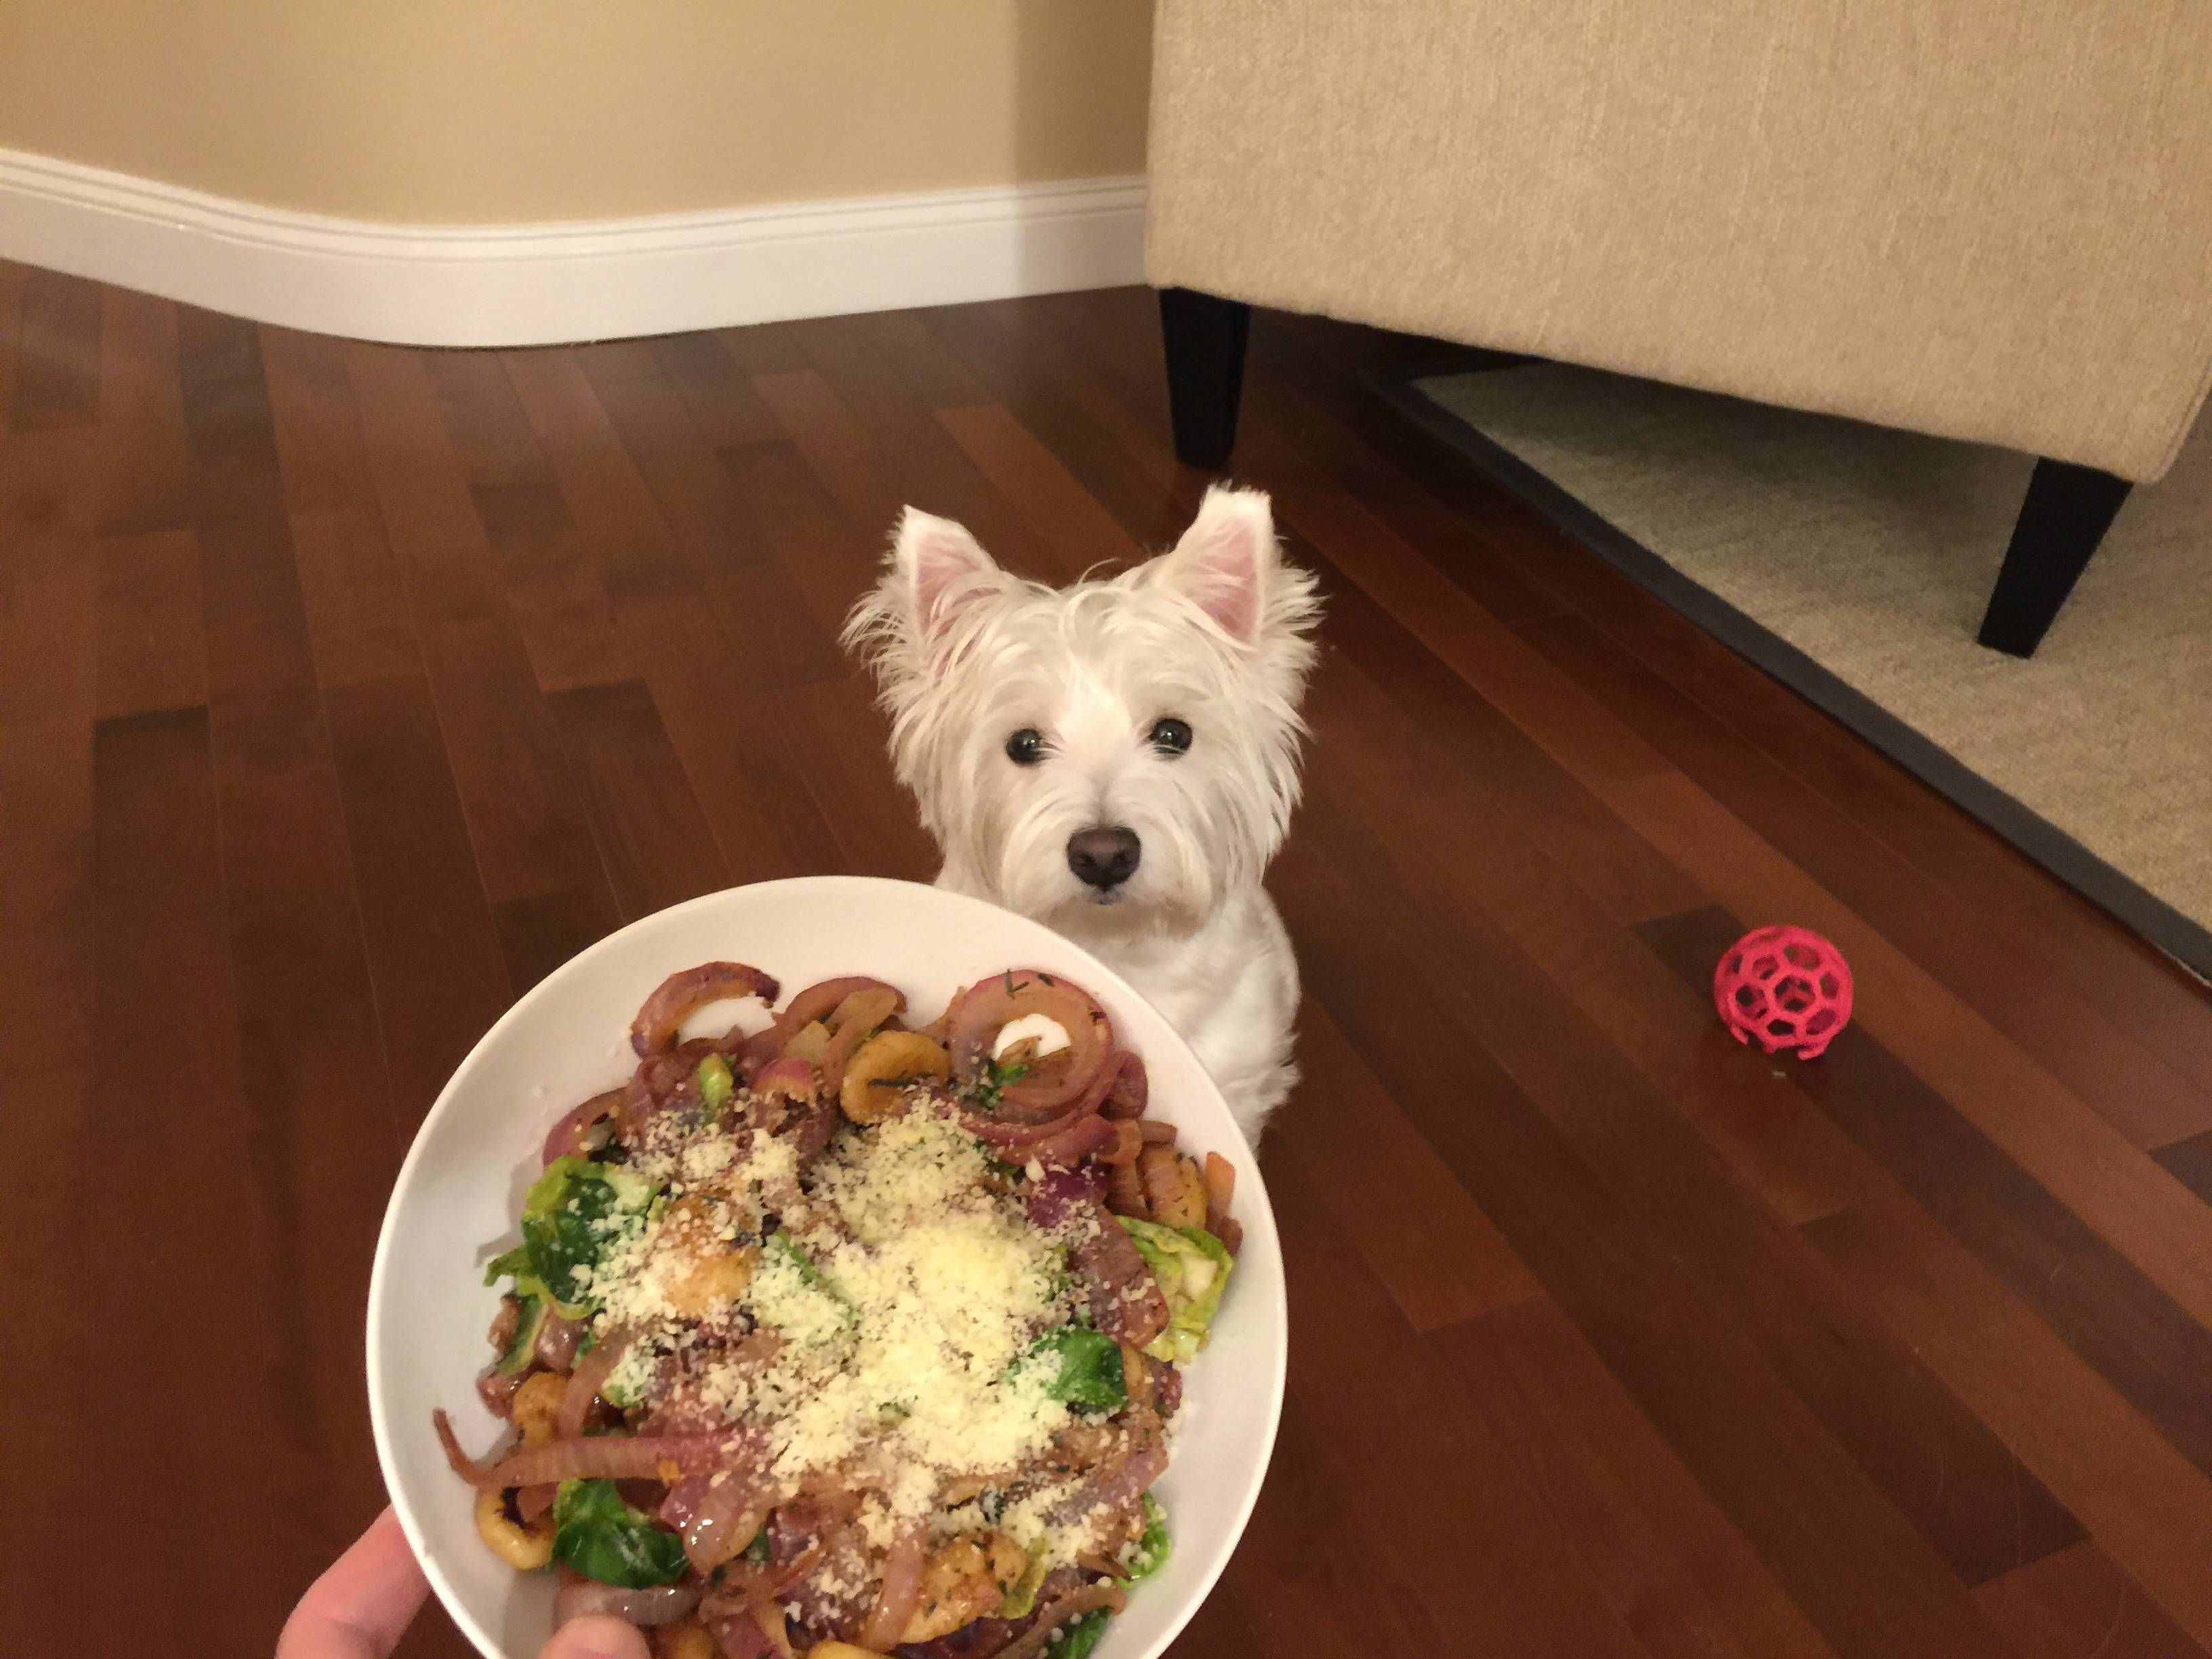 My partner is out of town and she requested updates. It appears as though I am actually trying to hurt her because I cook like this and my dog looks like that.